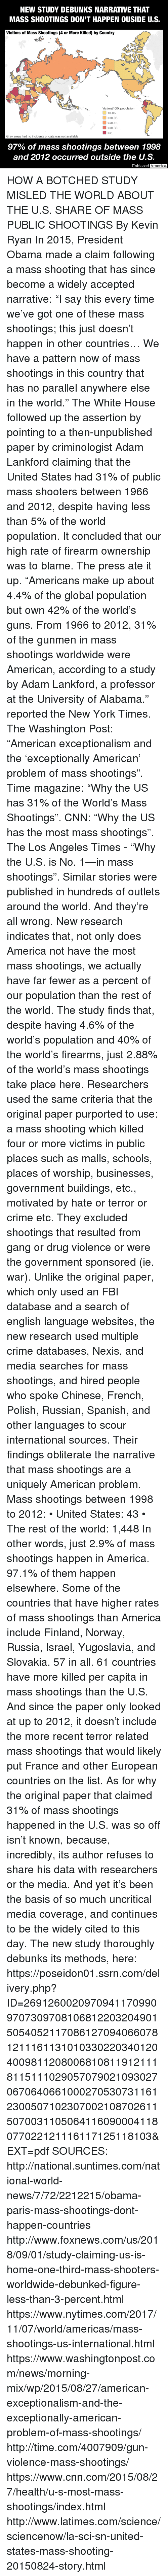 """America, cnn.com, and Crime: NEW STUDY DEBUNKS NARRATIVE THAT  MASS SHOOTINGS DON'T HAPPEN OUSIDE U.S.  Victims of Mass Shootings (4 or More Killed) by Country  Victims/100k population  0.06  0.06  >=0.15  0.33  >=1  Gray areas had no incidents or data was not available  97% of mass shootings between 1998  and 2012 occurred outside the U.S.  Unbiased America HOW A BOTCHED STUDY MISLED THE WORLD ABOUT THE U.S. SHARE OF MASS PUBLIC SHOOTINGS By Kevin Ryan  In 2015, President Obama made a claim following a mass shooting that has since become a widely accepted narrative:  """"I say this every time we've got one of these mass shootings; this just doesn't happen in other countries… We have a pattern now of mass shootings in this country that has no parallel anywhere else in the world.""""  The White House followed up the assertion by pointing to a then-unpublished paper by criminologist Adam Lankford claiming that the United States had 31% of public mass shooters between 1966 and 2012, despite having less than 5% of the world population.  It concluded that our high rate of firearm ownership was to blame.  The press ate it up.  """"Americans make up about 4.4% of the global population but own 42% of the world's guns. From 1966 to 2012, 31% of the gunmen in mass shootings worldwide were American, according to a study by Adam Lankford, a professor at the University of Alabama."""" reported the New York Times.  The Washington Post: """"American exceptionalism and the 'exceptionally American' problem of mass shootings"""".  Time magazine: """"Why the US has 31% of the World's Mass Shootings"""".  CNN: """"Why the US has the most mass shootings"""".  The Los Angeles Times - """"Why the U.S. is No. 1—in mass shootings"""".  Similar stories were published in hundreds of outlets around the world.  And they're all wrong.  New research indicates that, not only does America not have the most mass shootings, we actually have far fewer as a percent of our population than the rest of the world.  The study finds that, desp"""